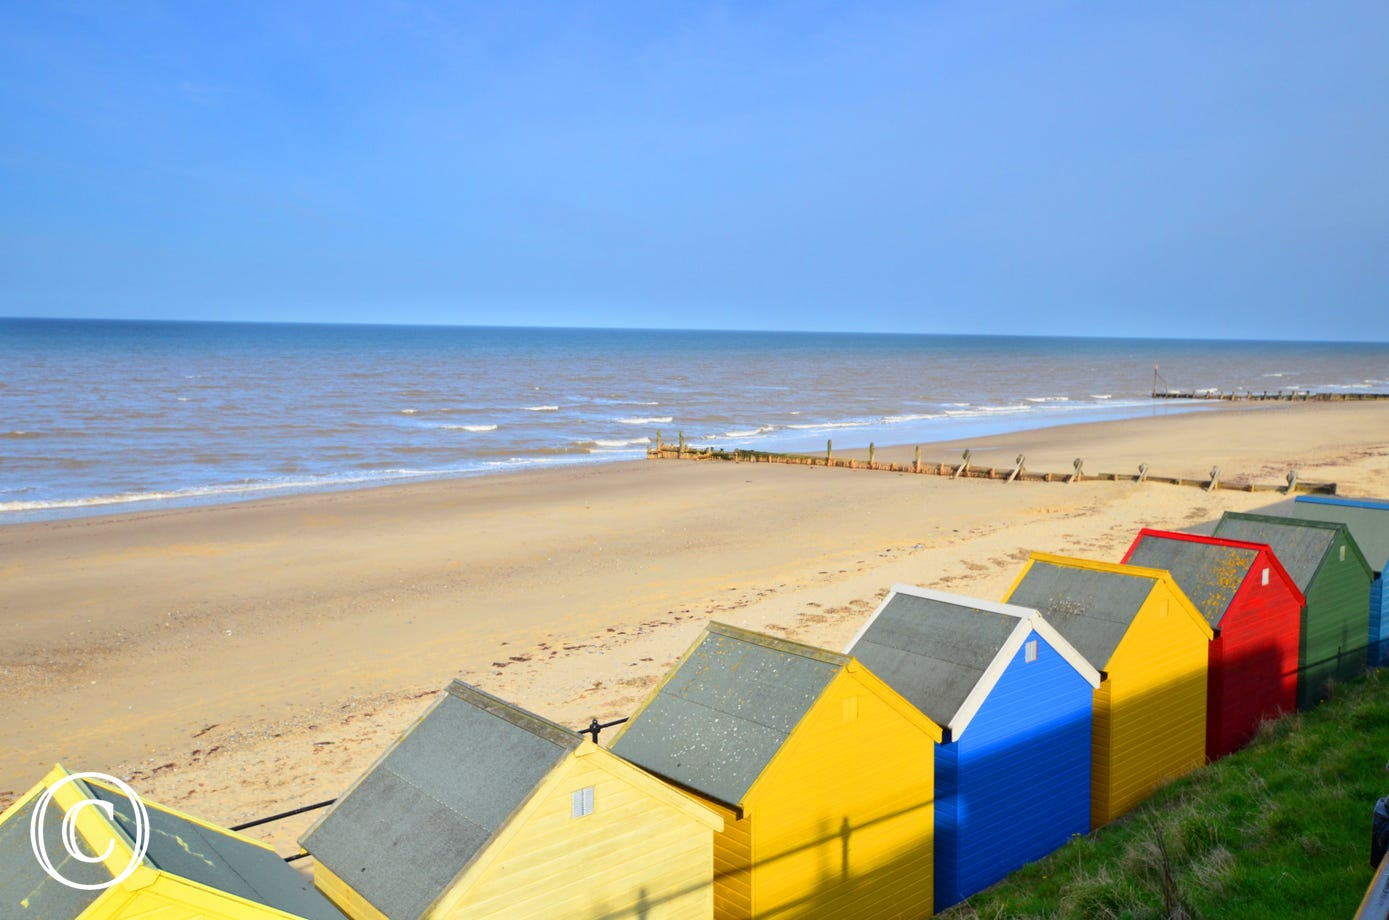 Multi-coloured beach huts adorn the sea front.